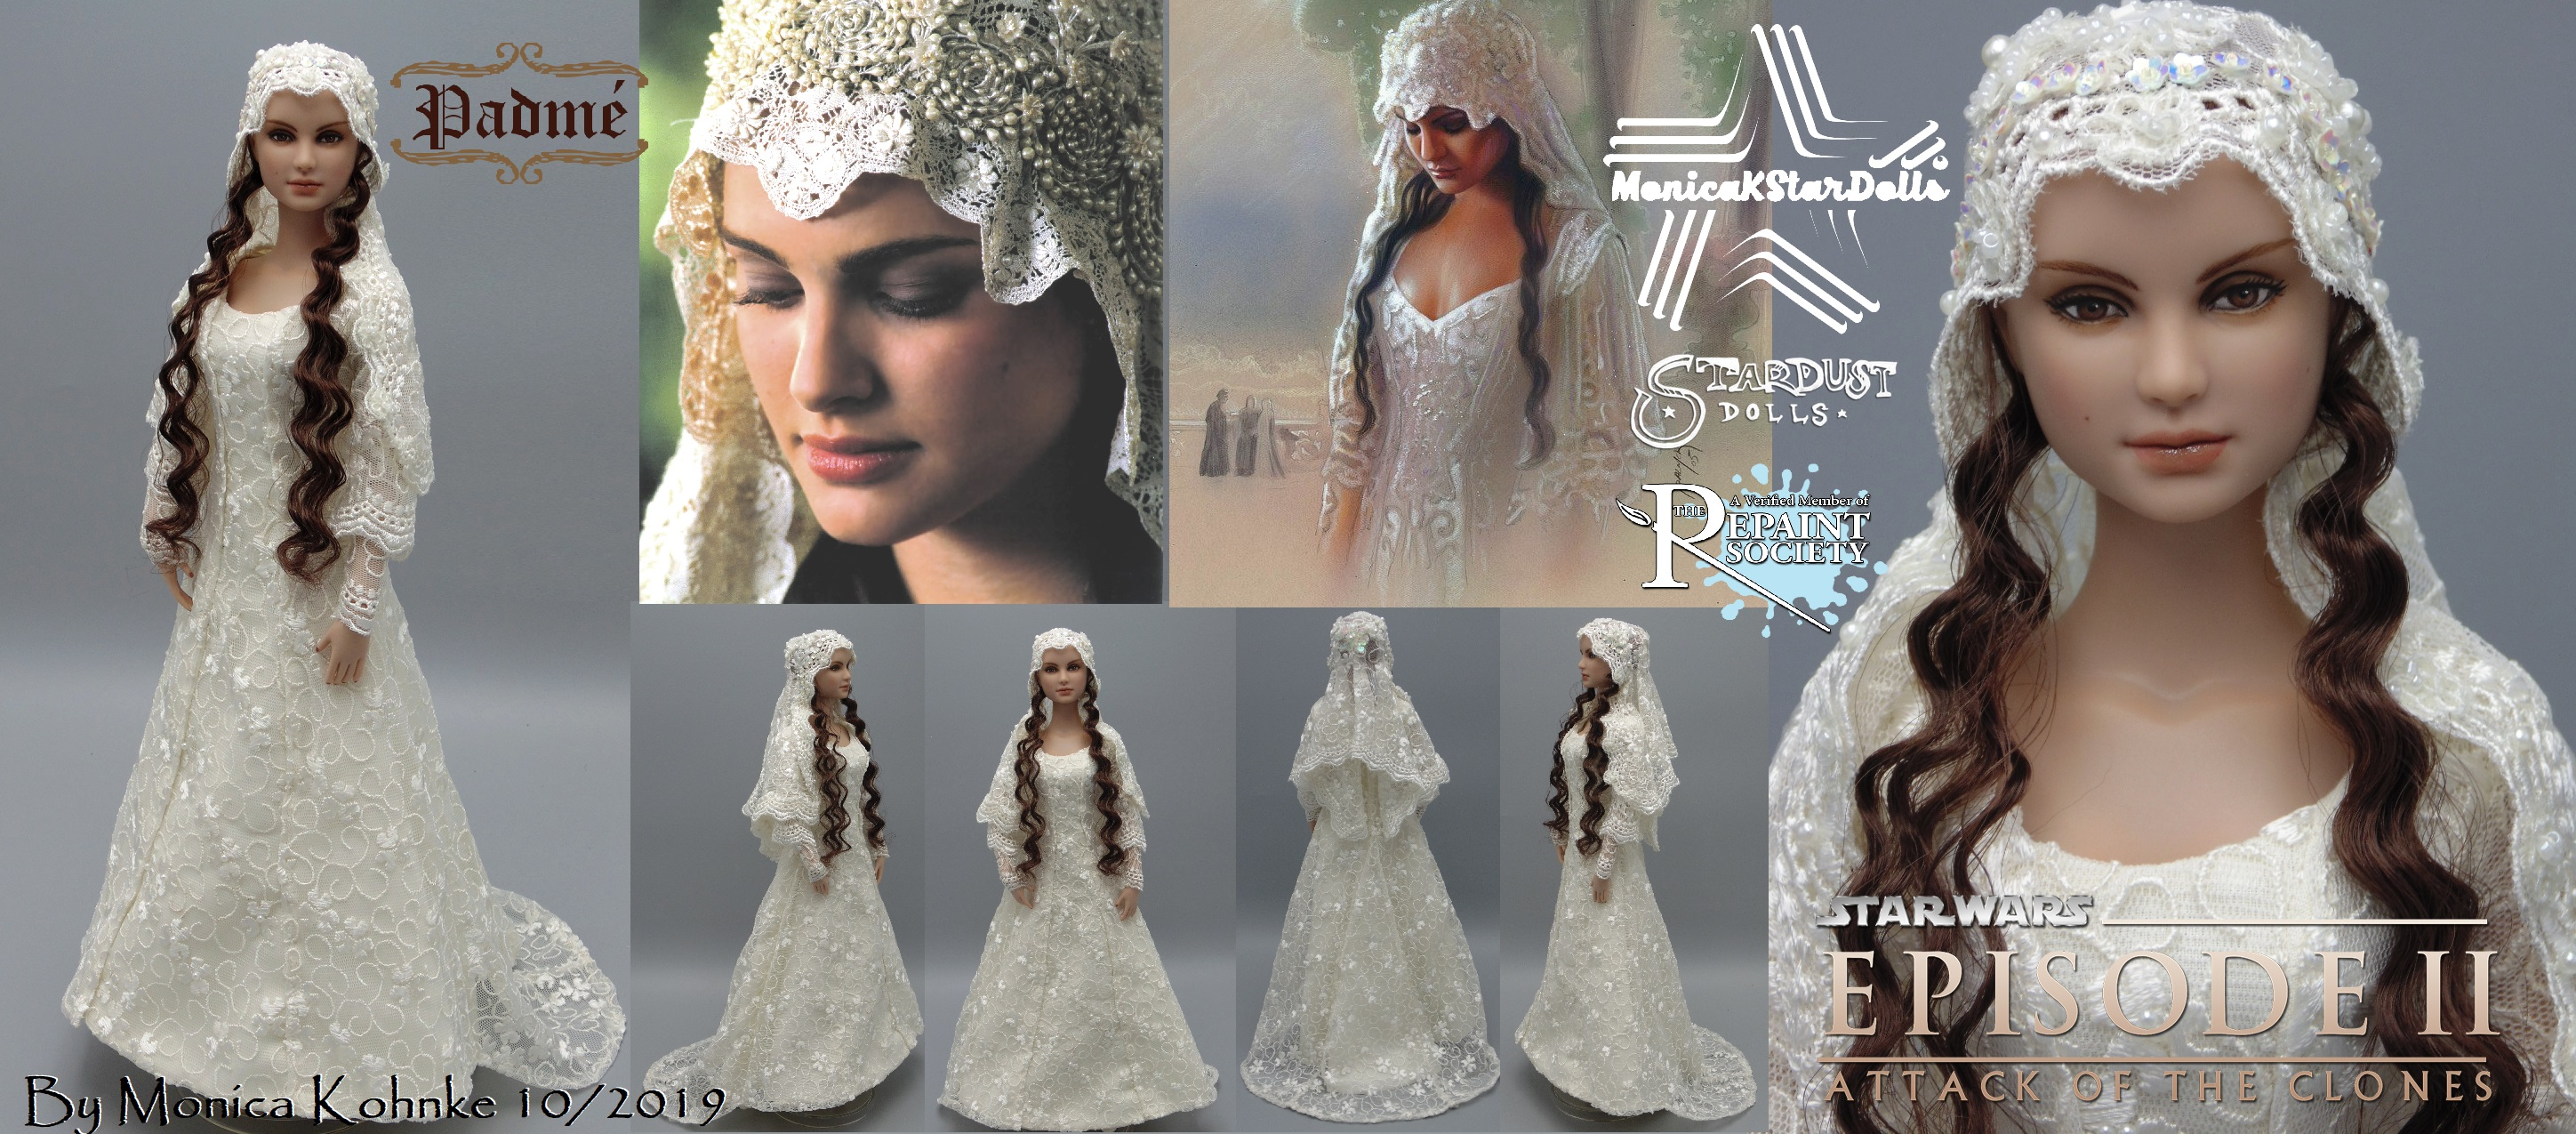 Padme Amidala Wedding Day